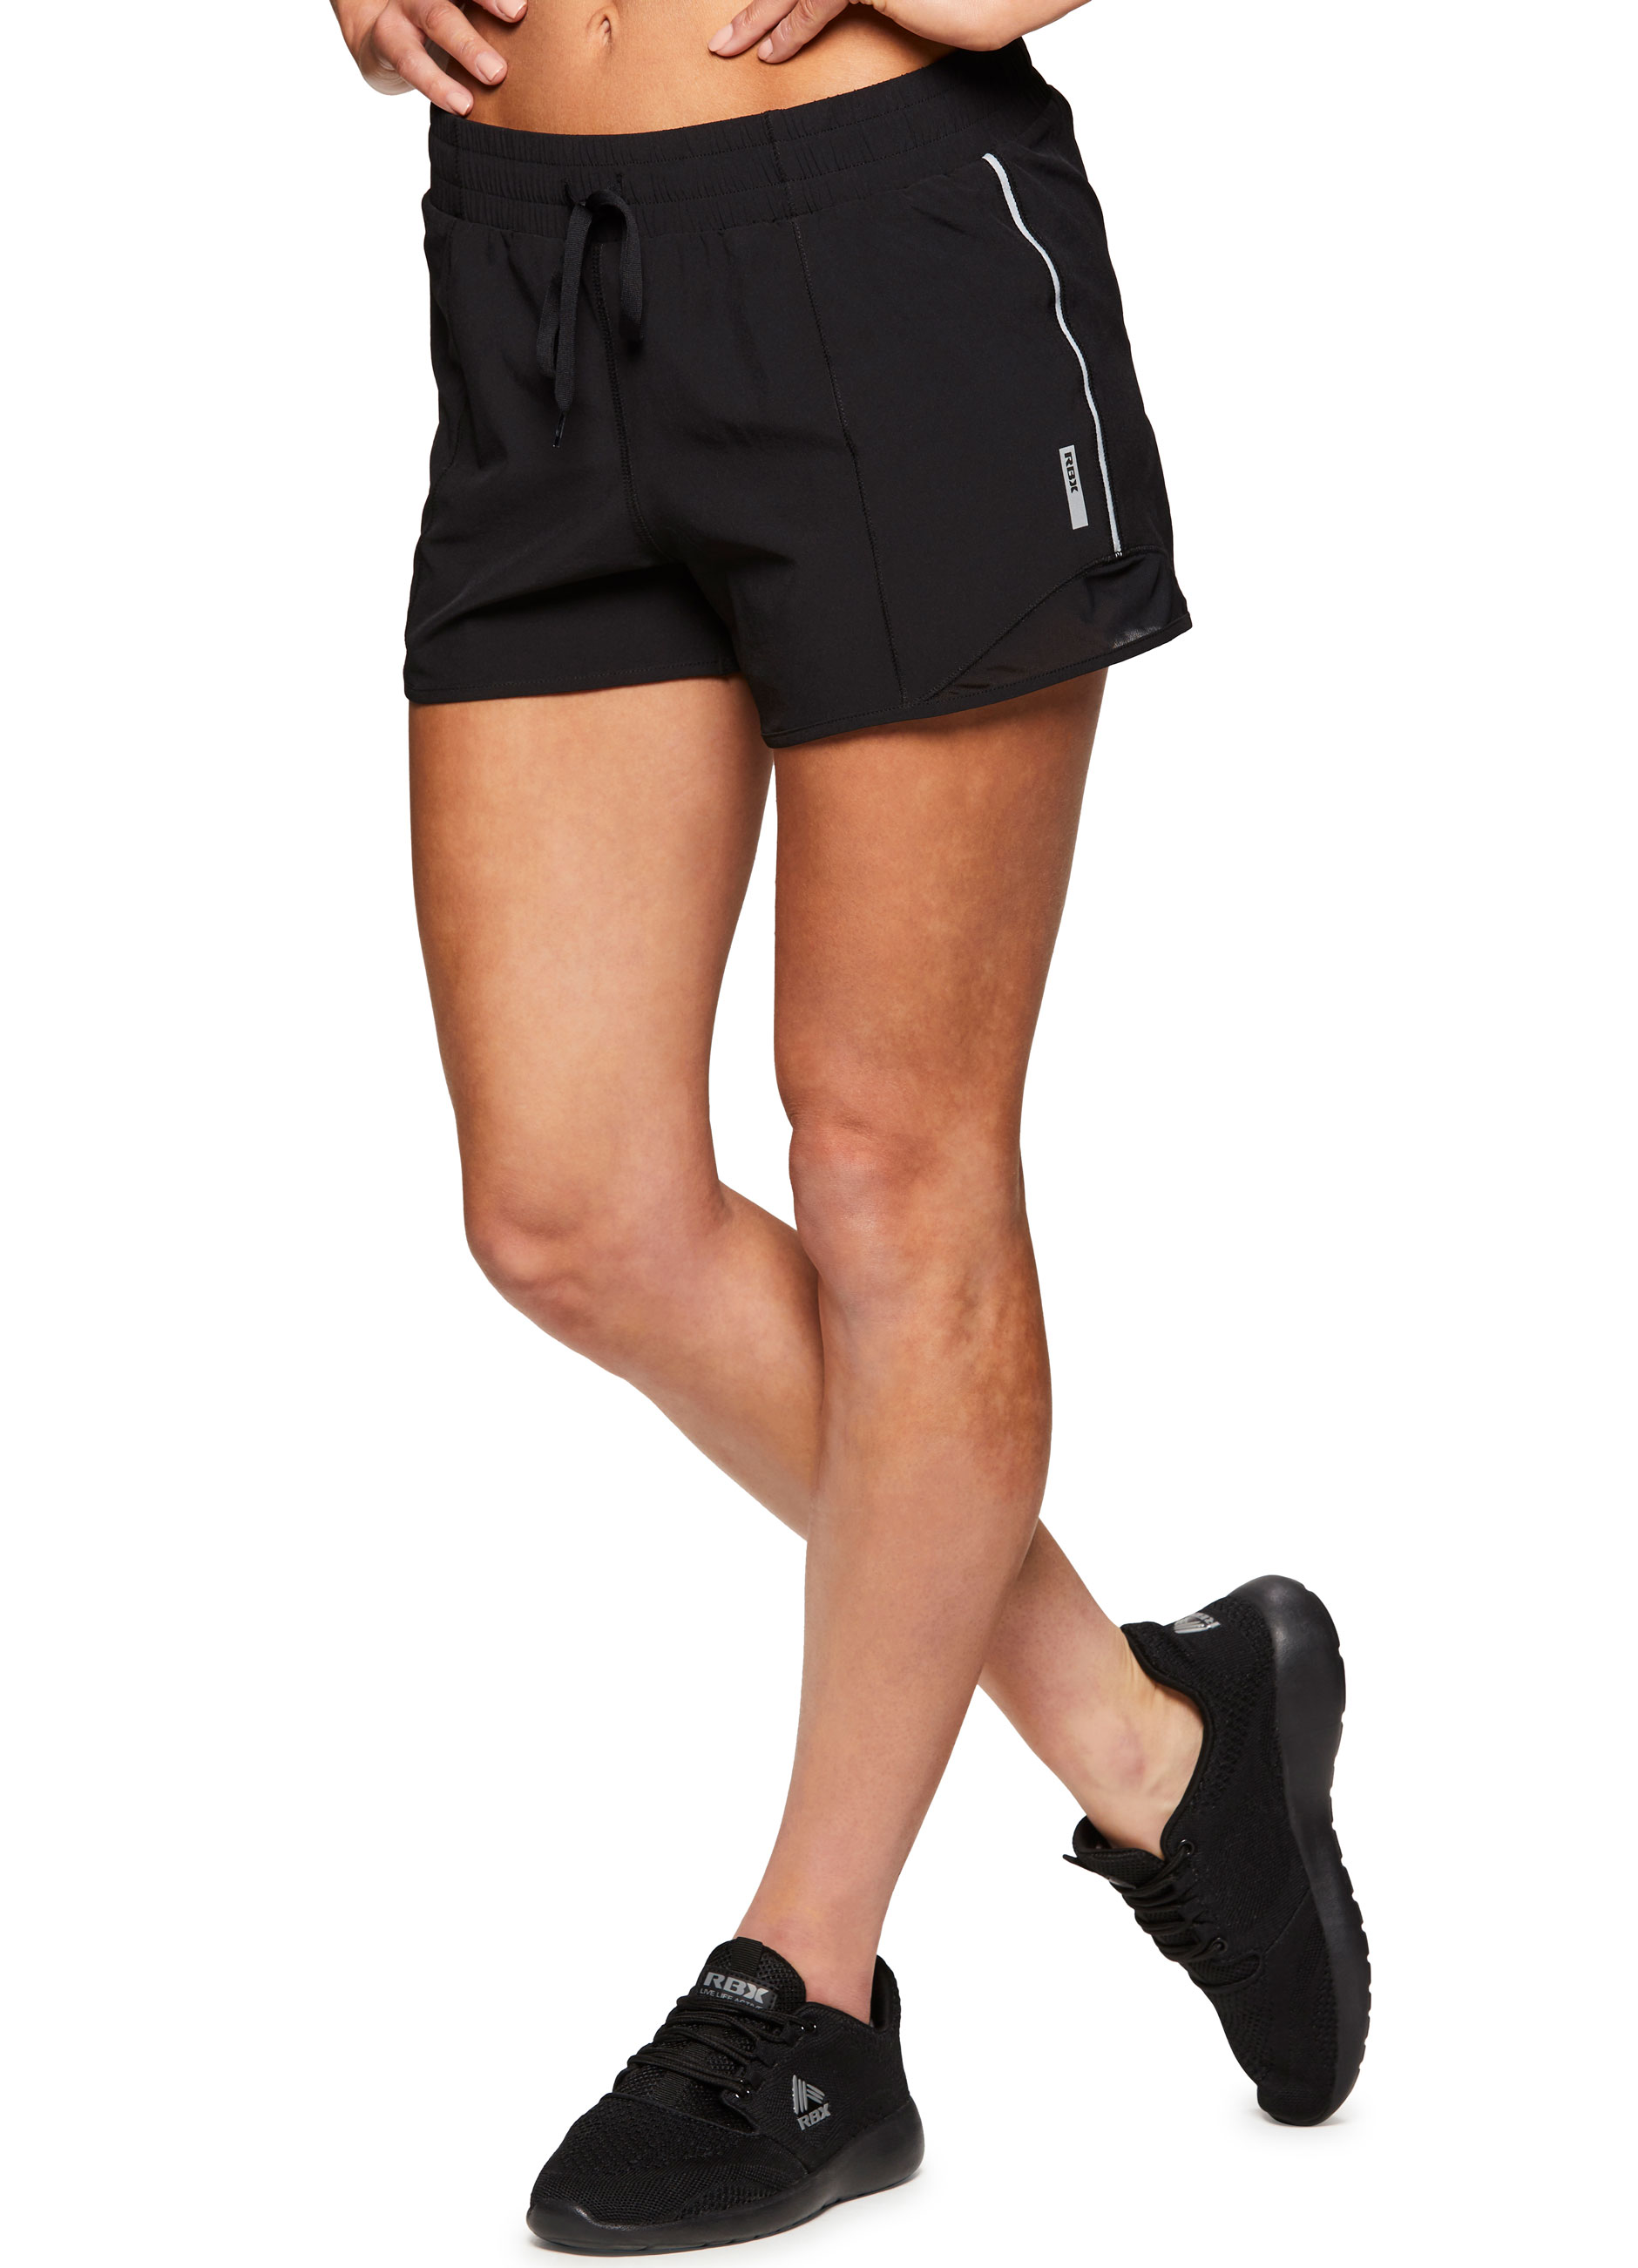 ca6f16837c7 RBX Active Women s 3 inch Workout Athletic Running Shorts